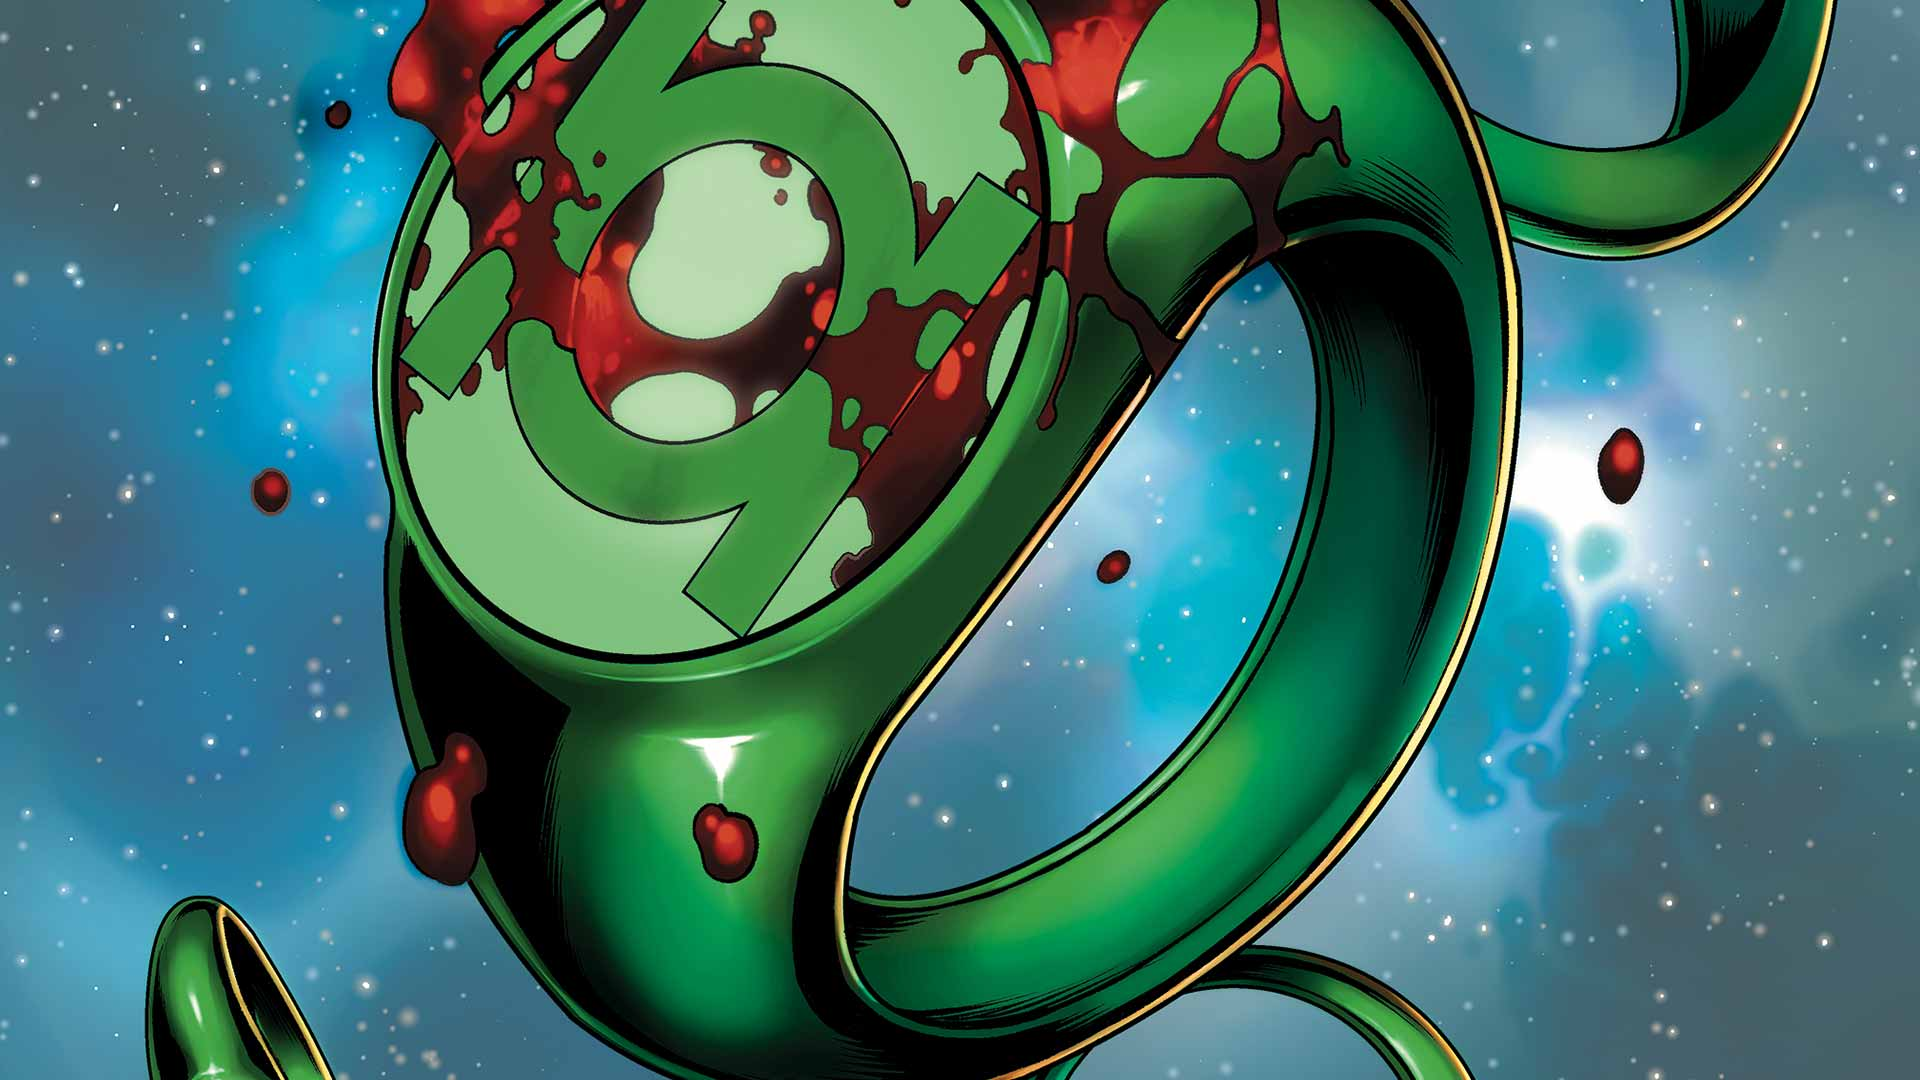 Green Lantern Backgrounds, Pictures, Images